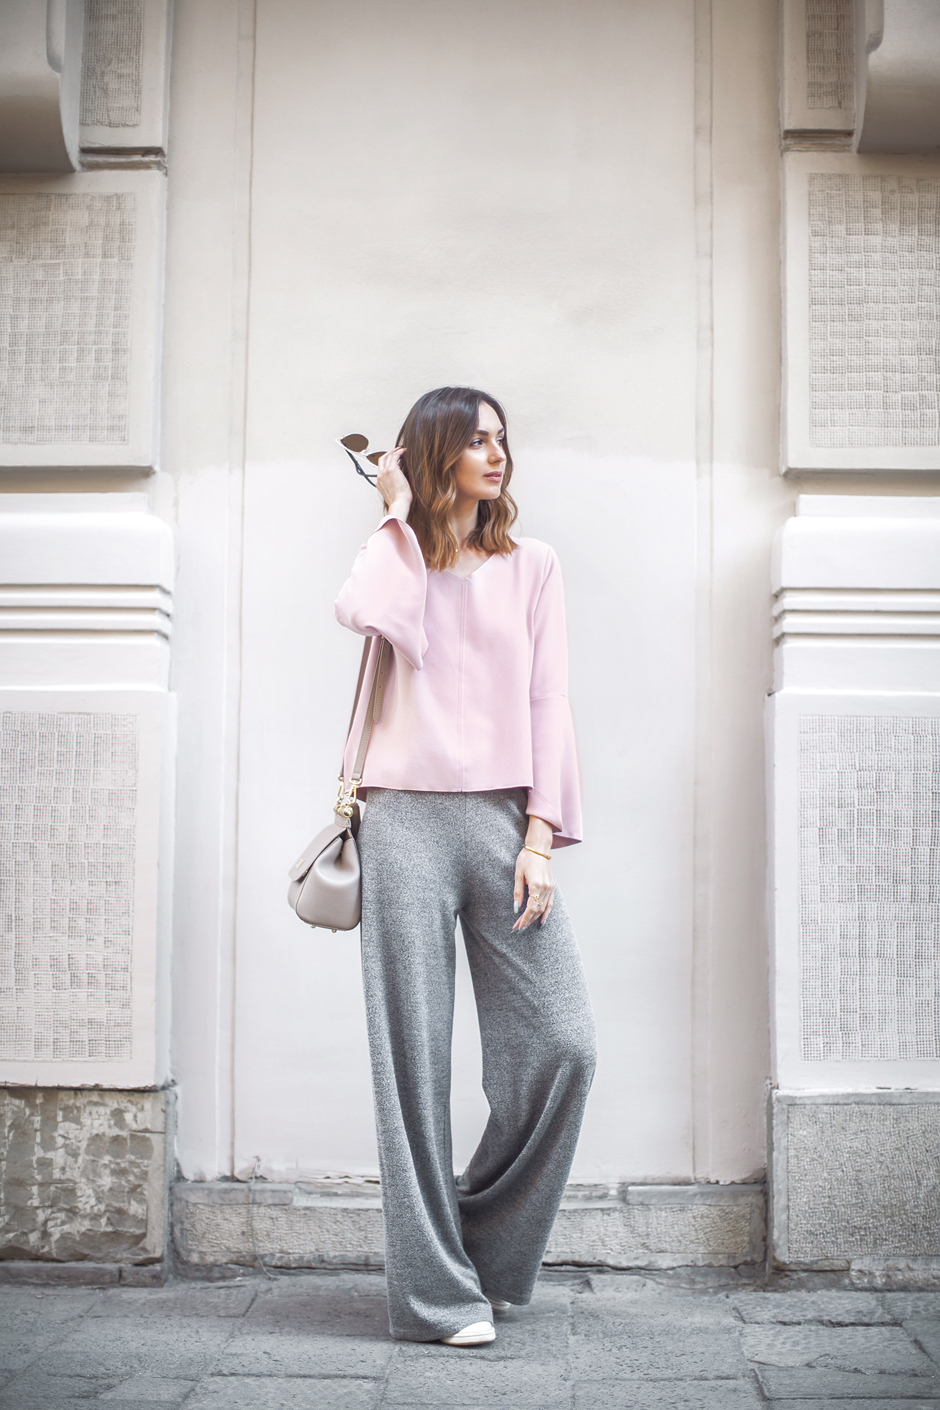 loose-wide-lounge-pants-sneakers-top-outfit-look-street-style